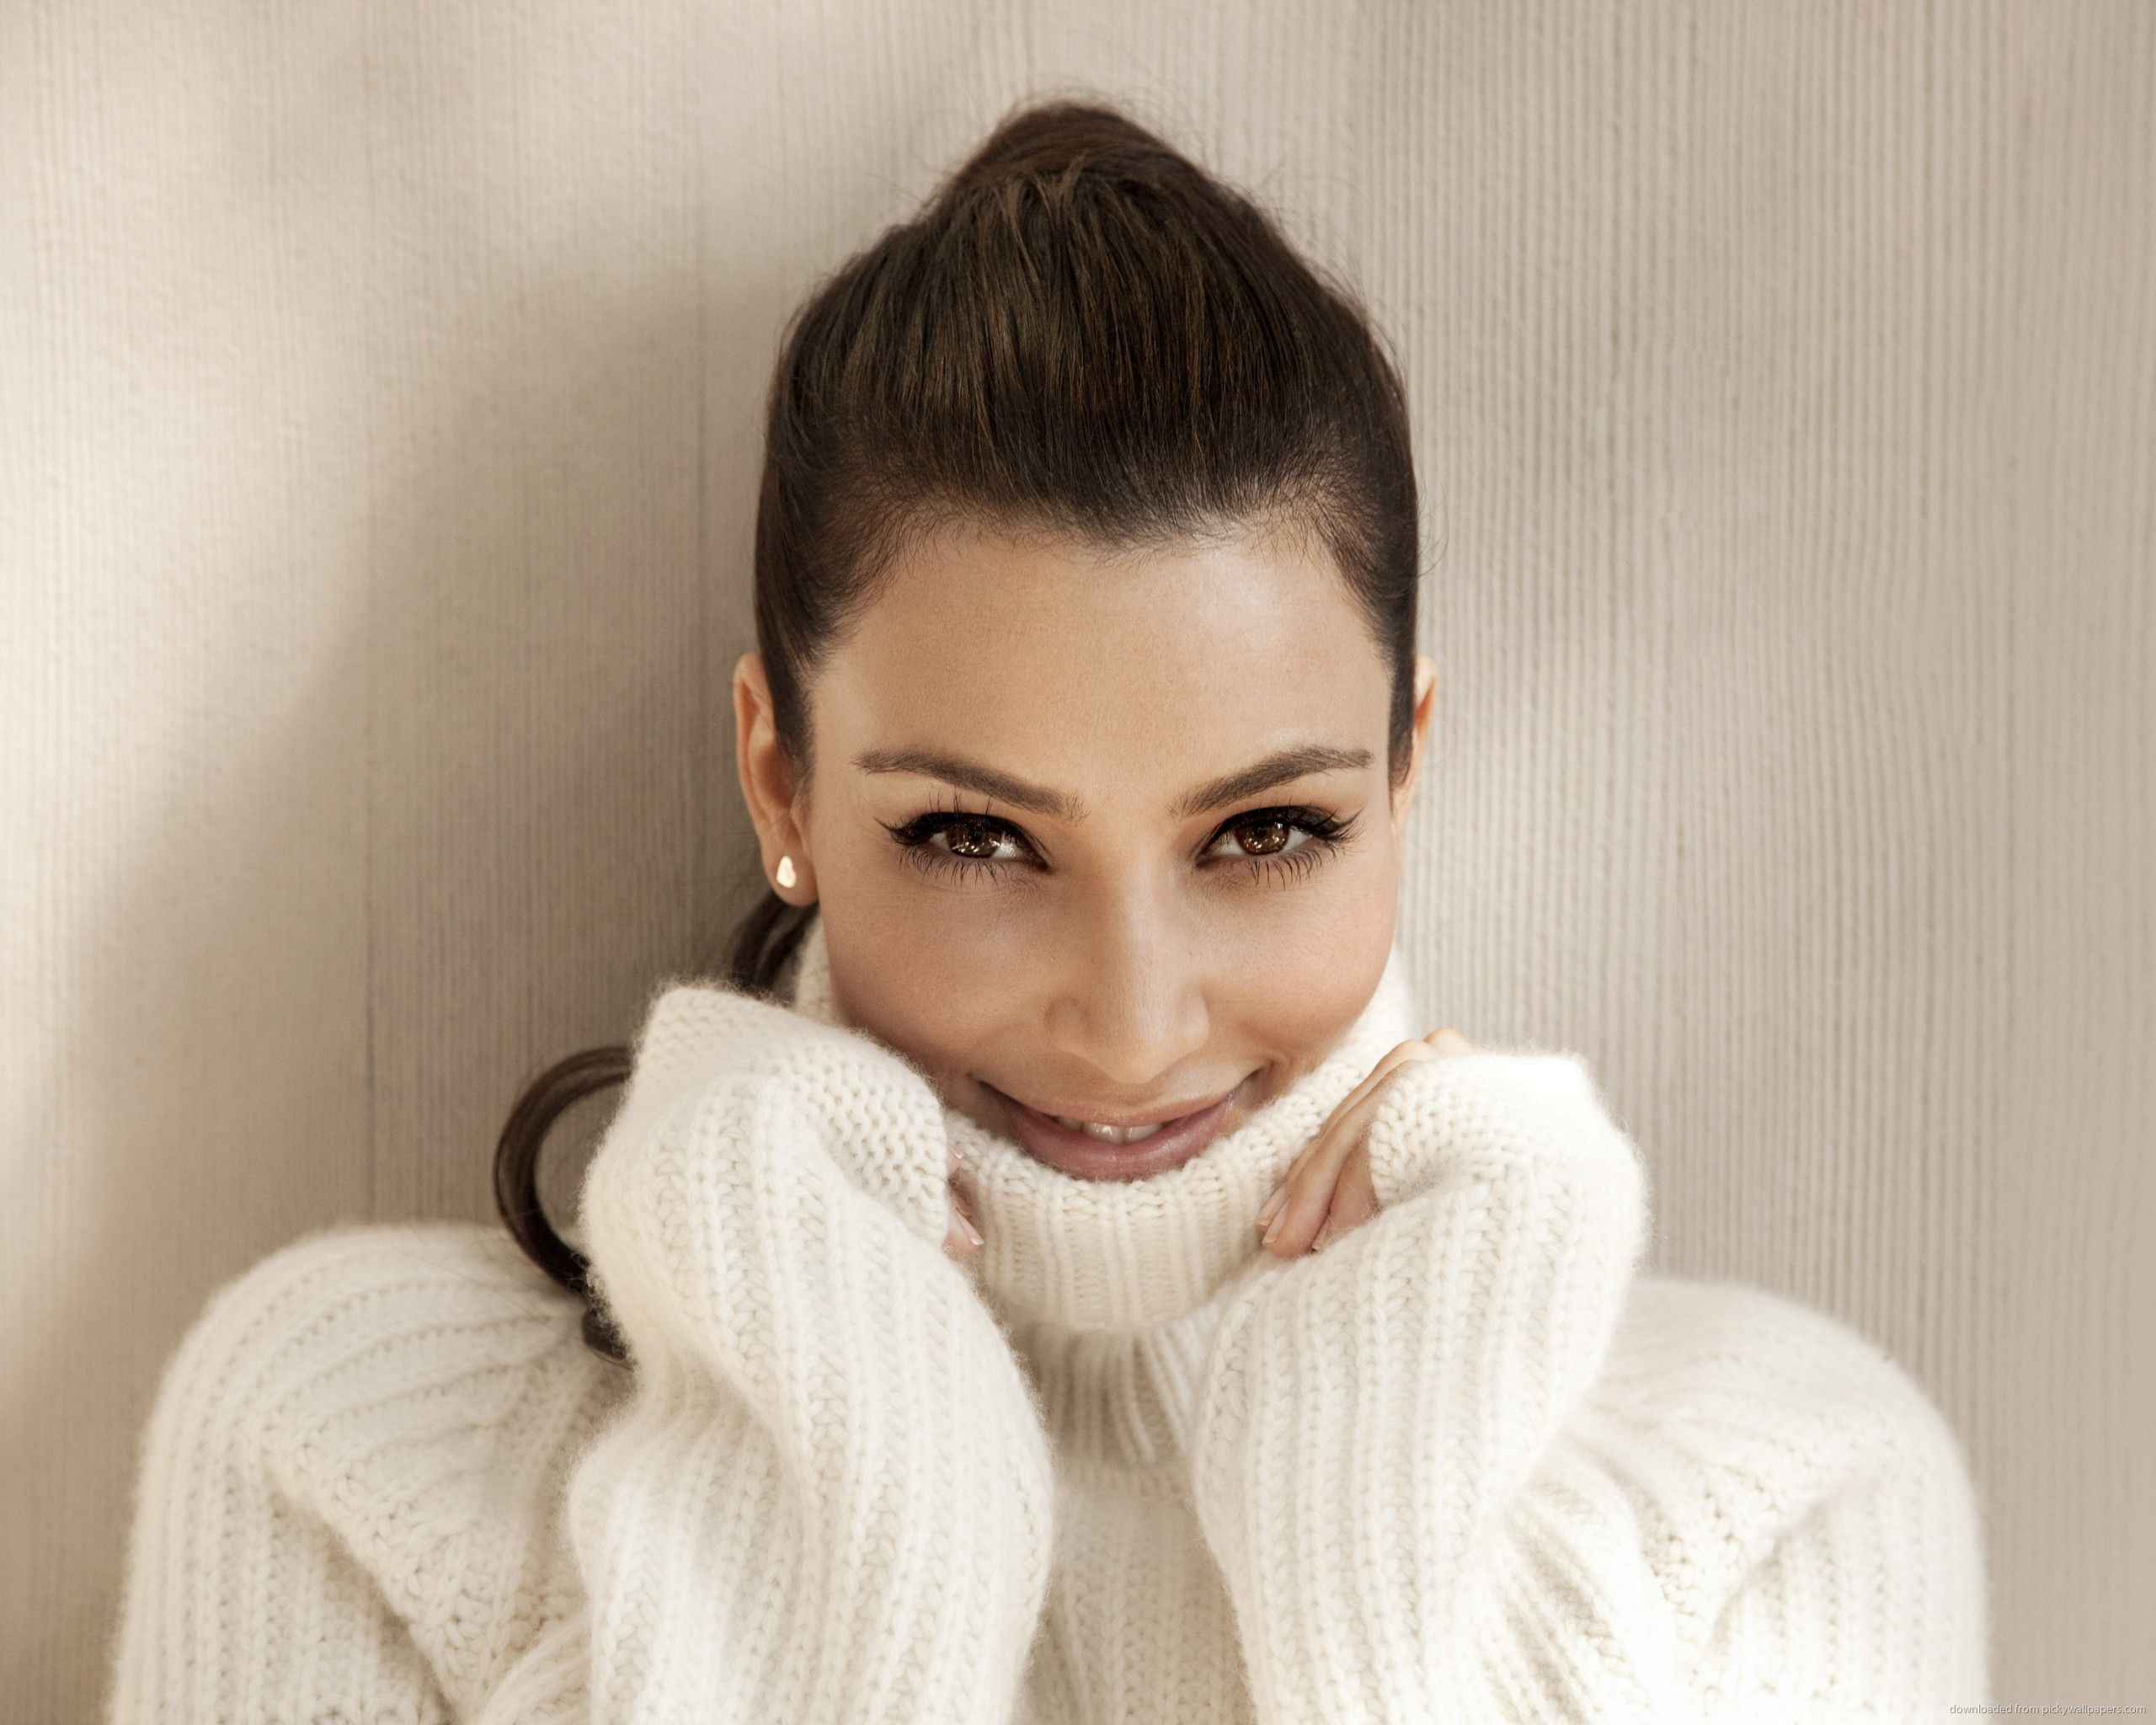 Download 2560x2048 Cute Kim Kardashian In Comfy White Sweater ...